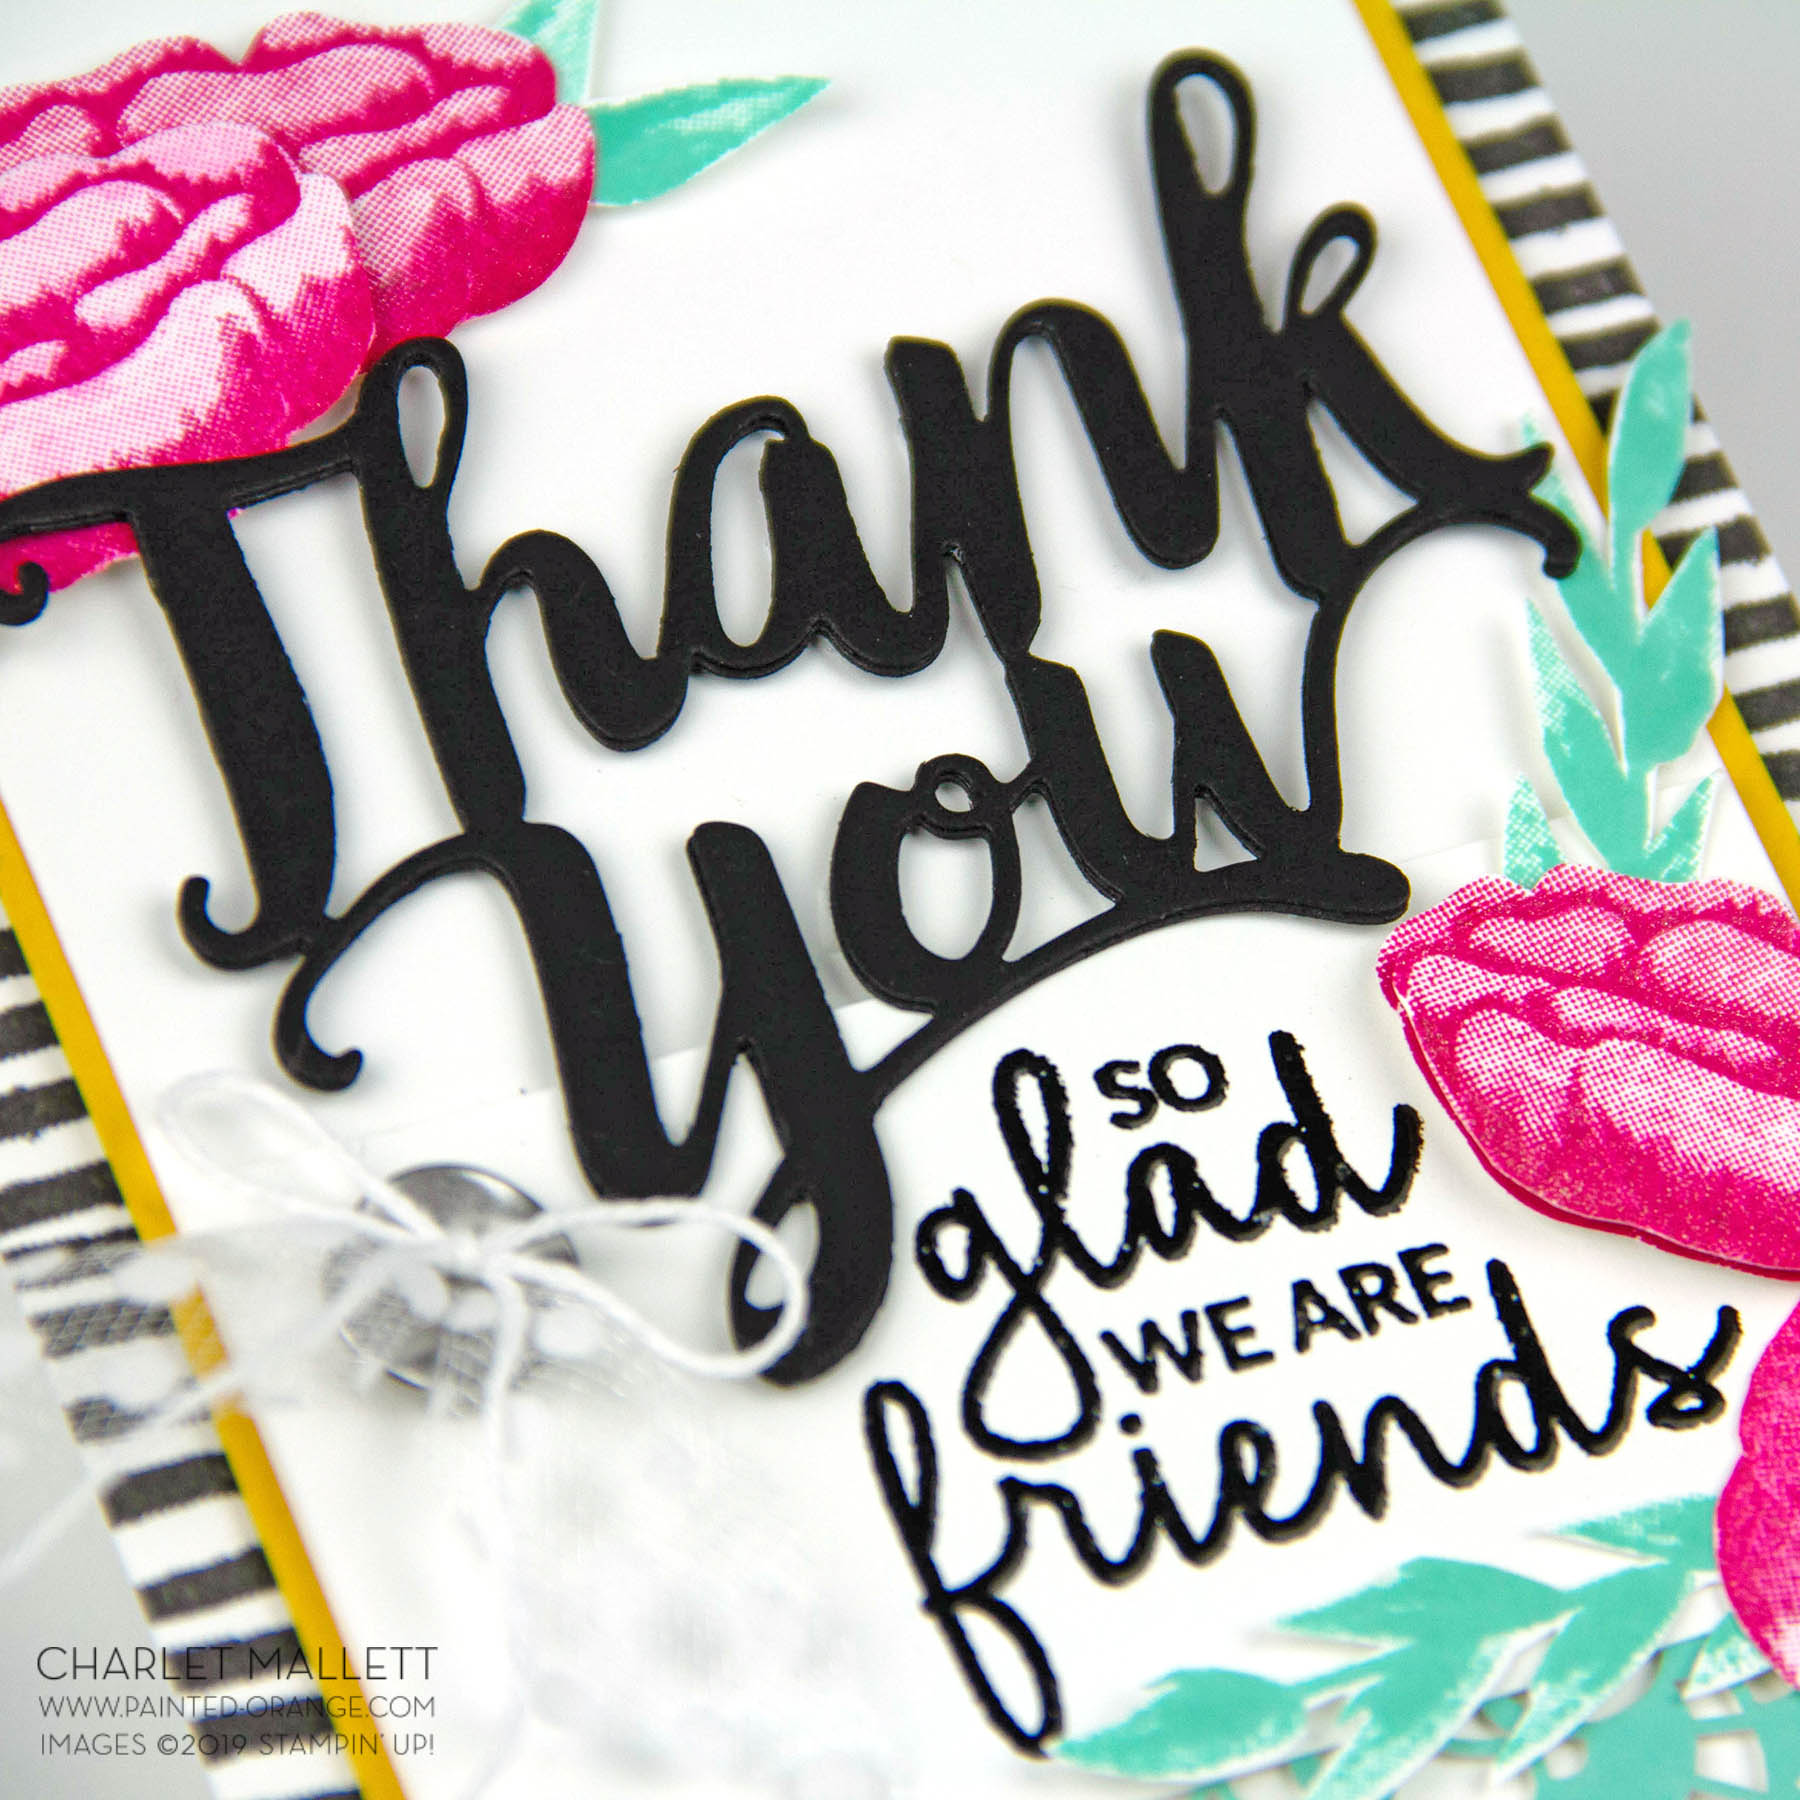 Thank You Banner panel - Incredible like You - Charlet Mallett, Stampin' Up!